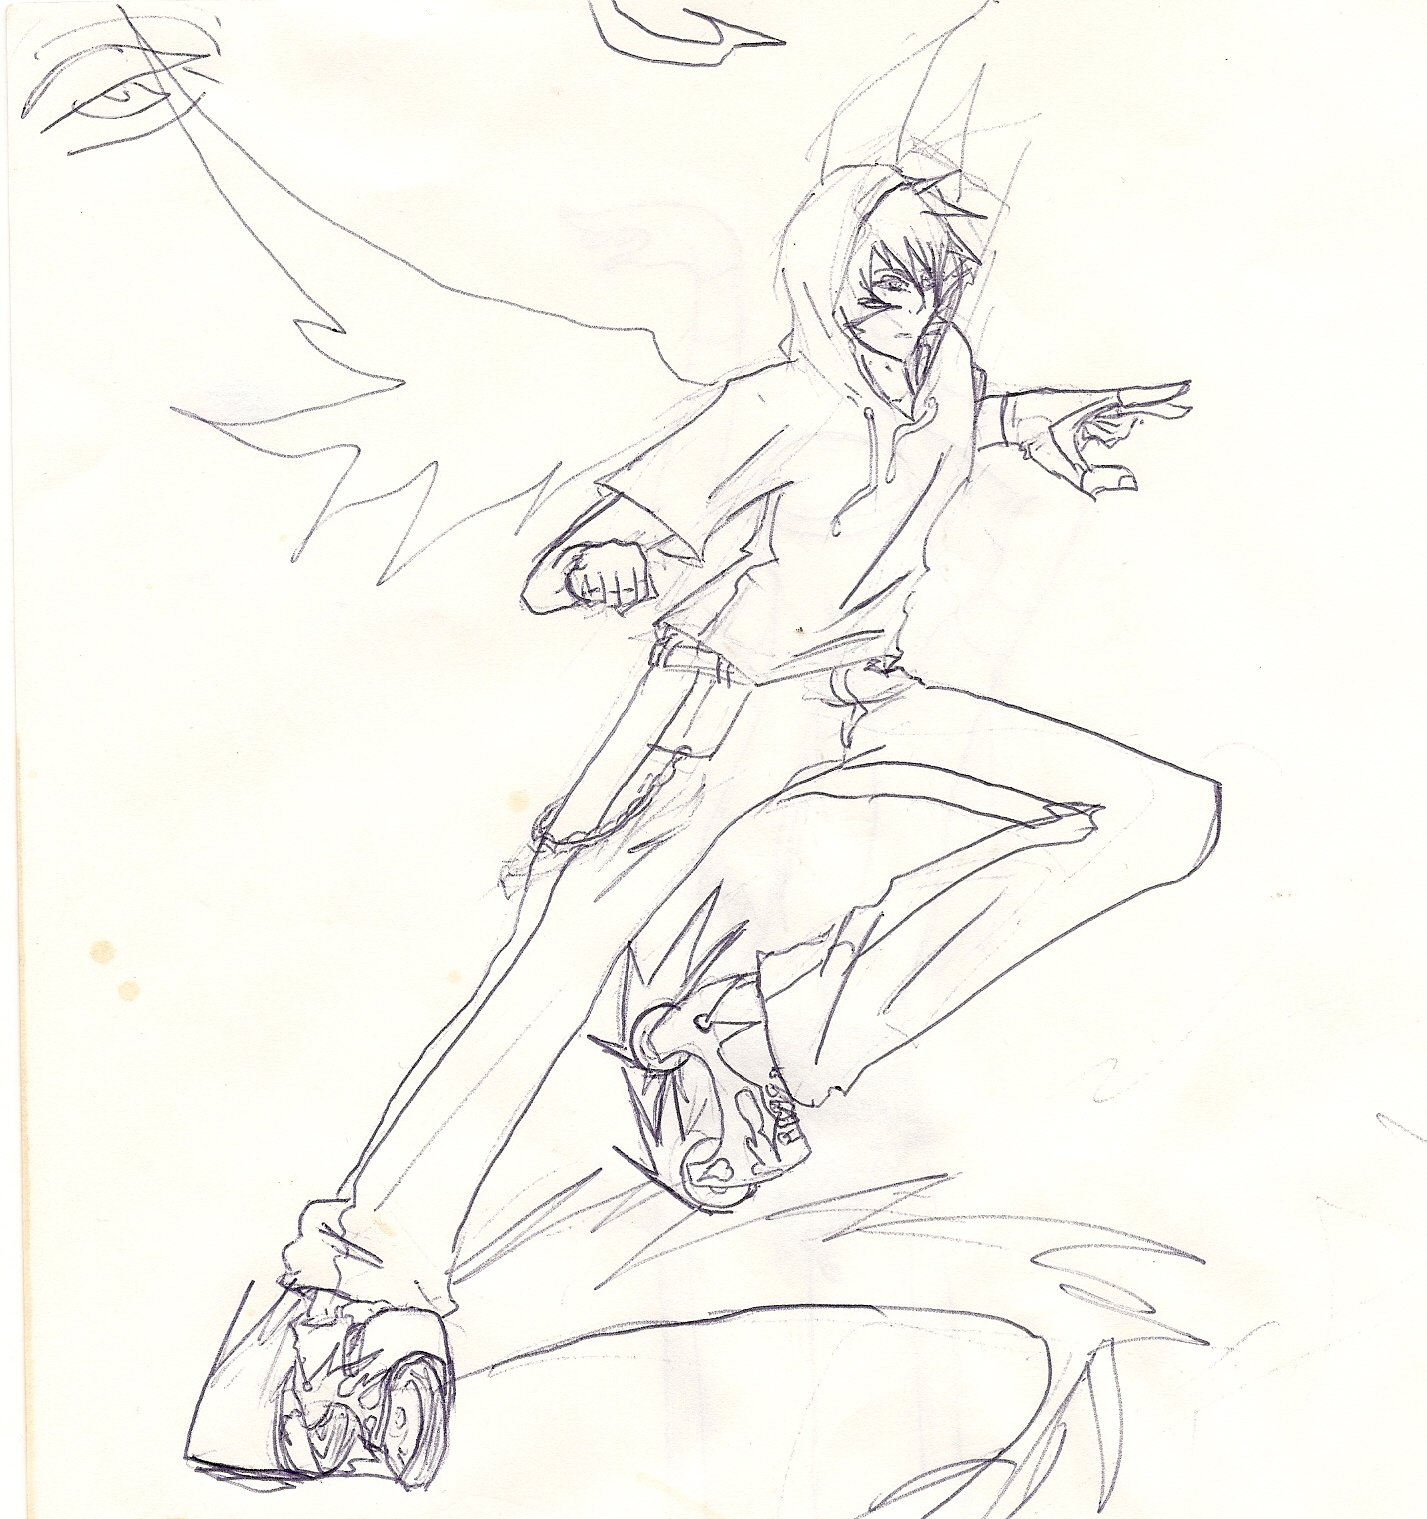 Air gear reference?